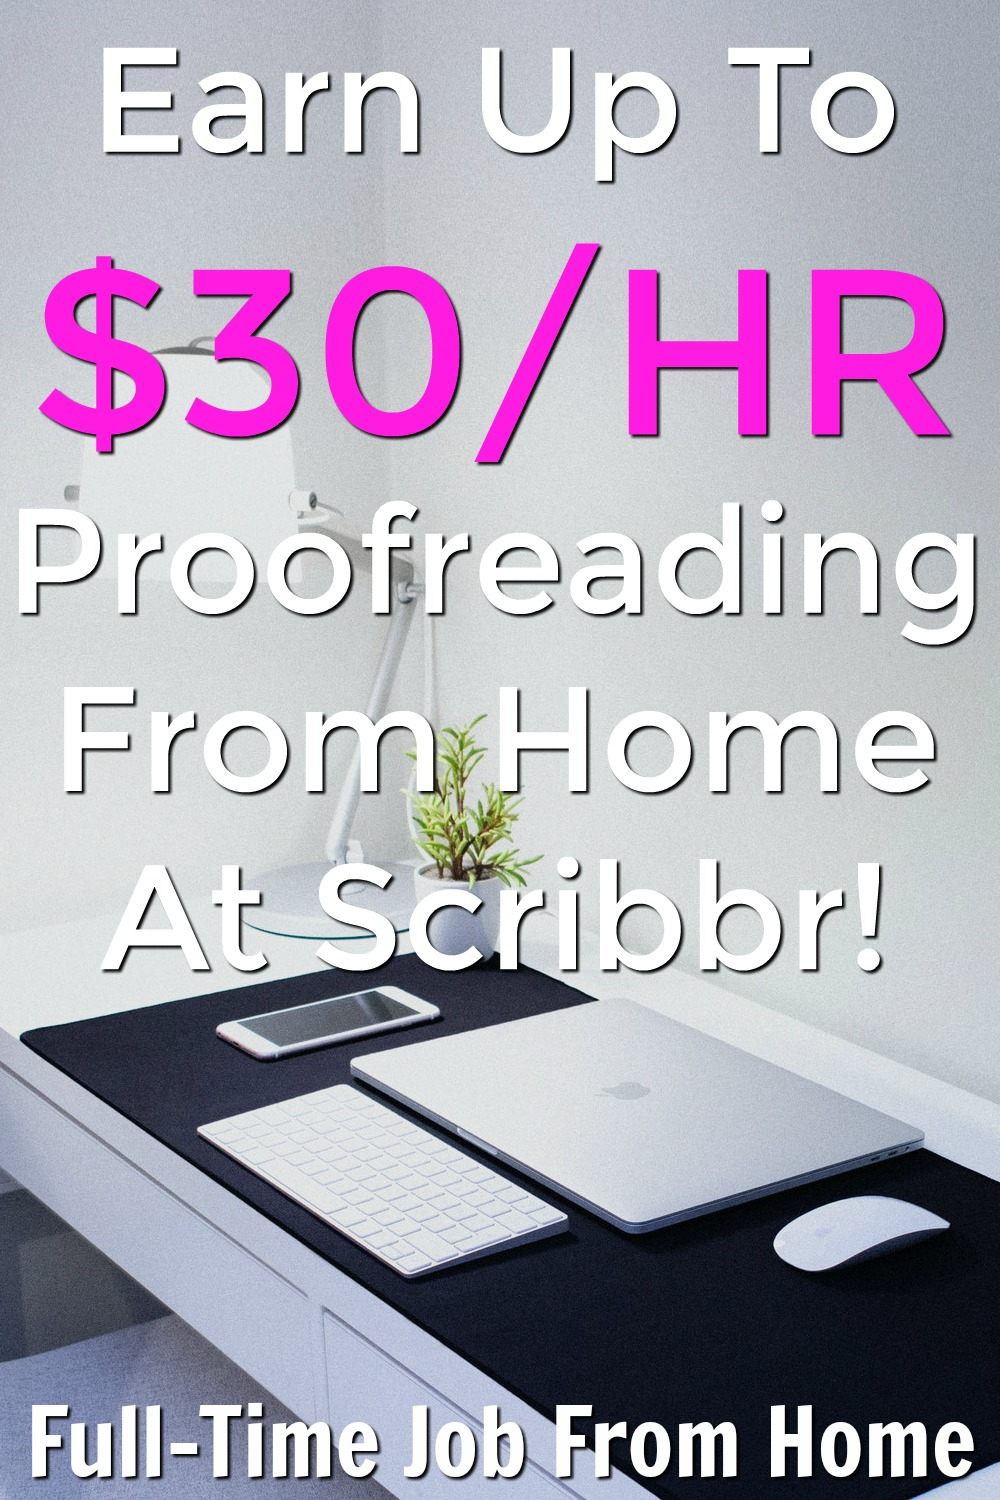 Did you know you can work from home as a proofreader and make up to $30 an hour? At Scribbr you can pick up editing jobs and get paid a great wage all from the comfort of your home!